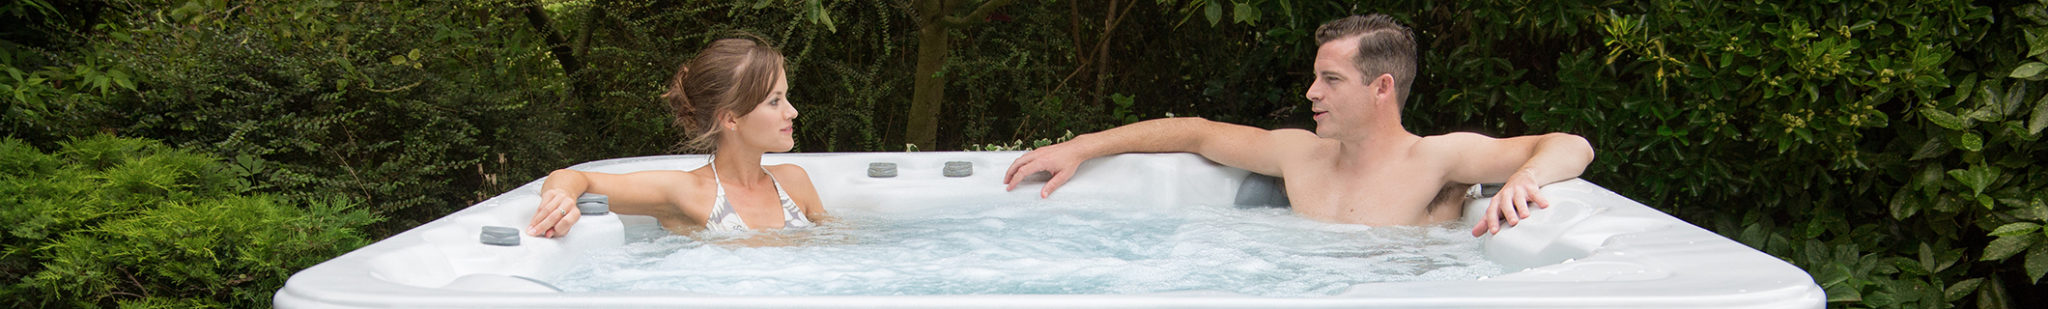 Heritage Hot Tubs & Spas